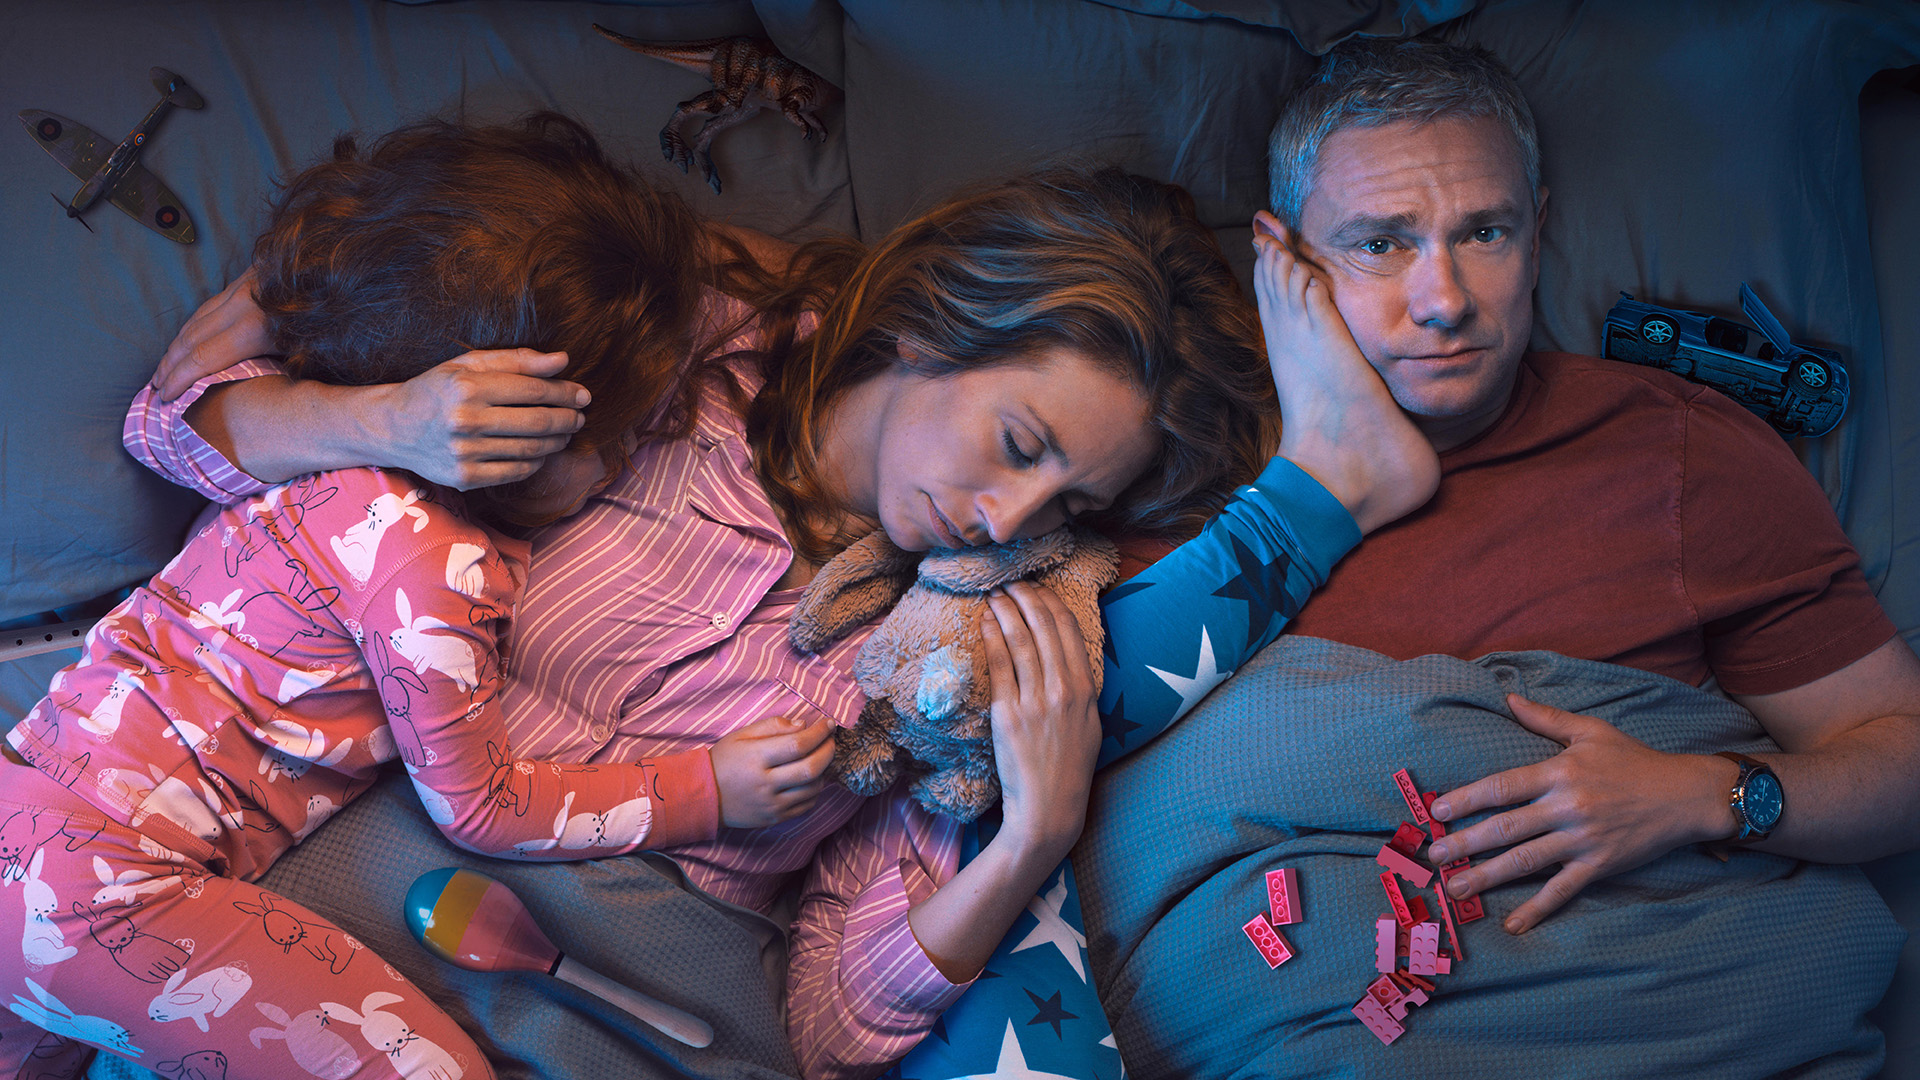 """""""Breeders,"""" a new Sky Original comedy starring Martin Freeman and Daisy Haggard, explores the paradox that every parent knows but never admits: you would willingly die for your children, but quite often you also want to kill them. The 10 x 30 series premieres in the UK and Ireland on 12th March at 10pm on Sky One and streaming service NOWTV."""